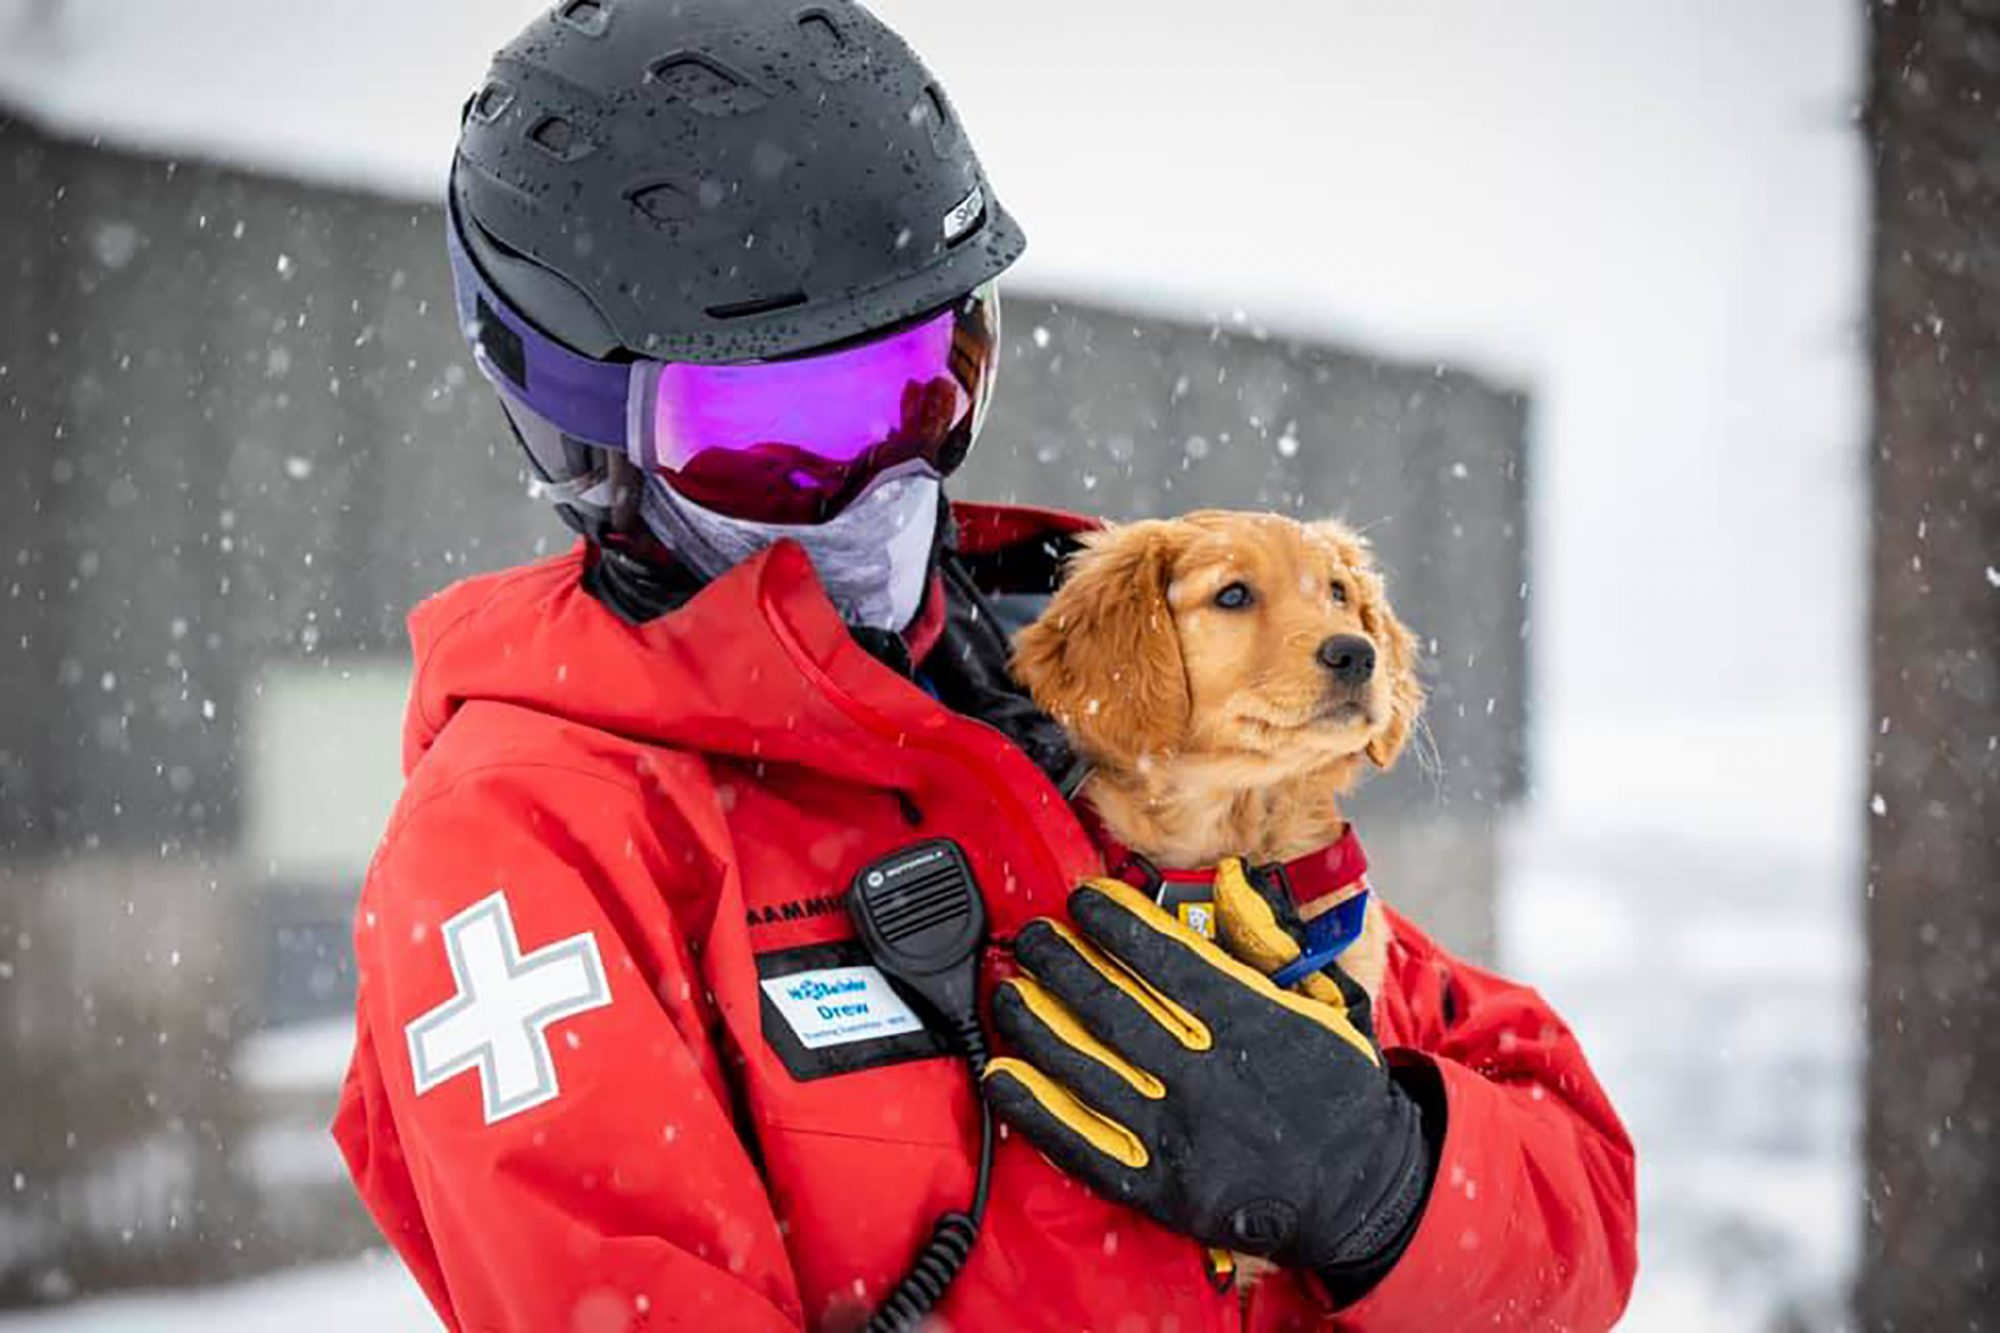 Shasta, the avalanche rescue dog, tucked in a person's coat